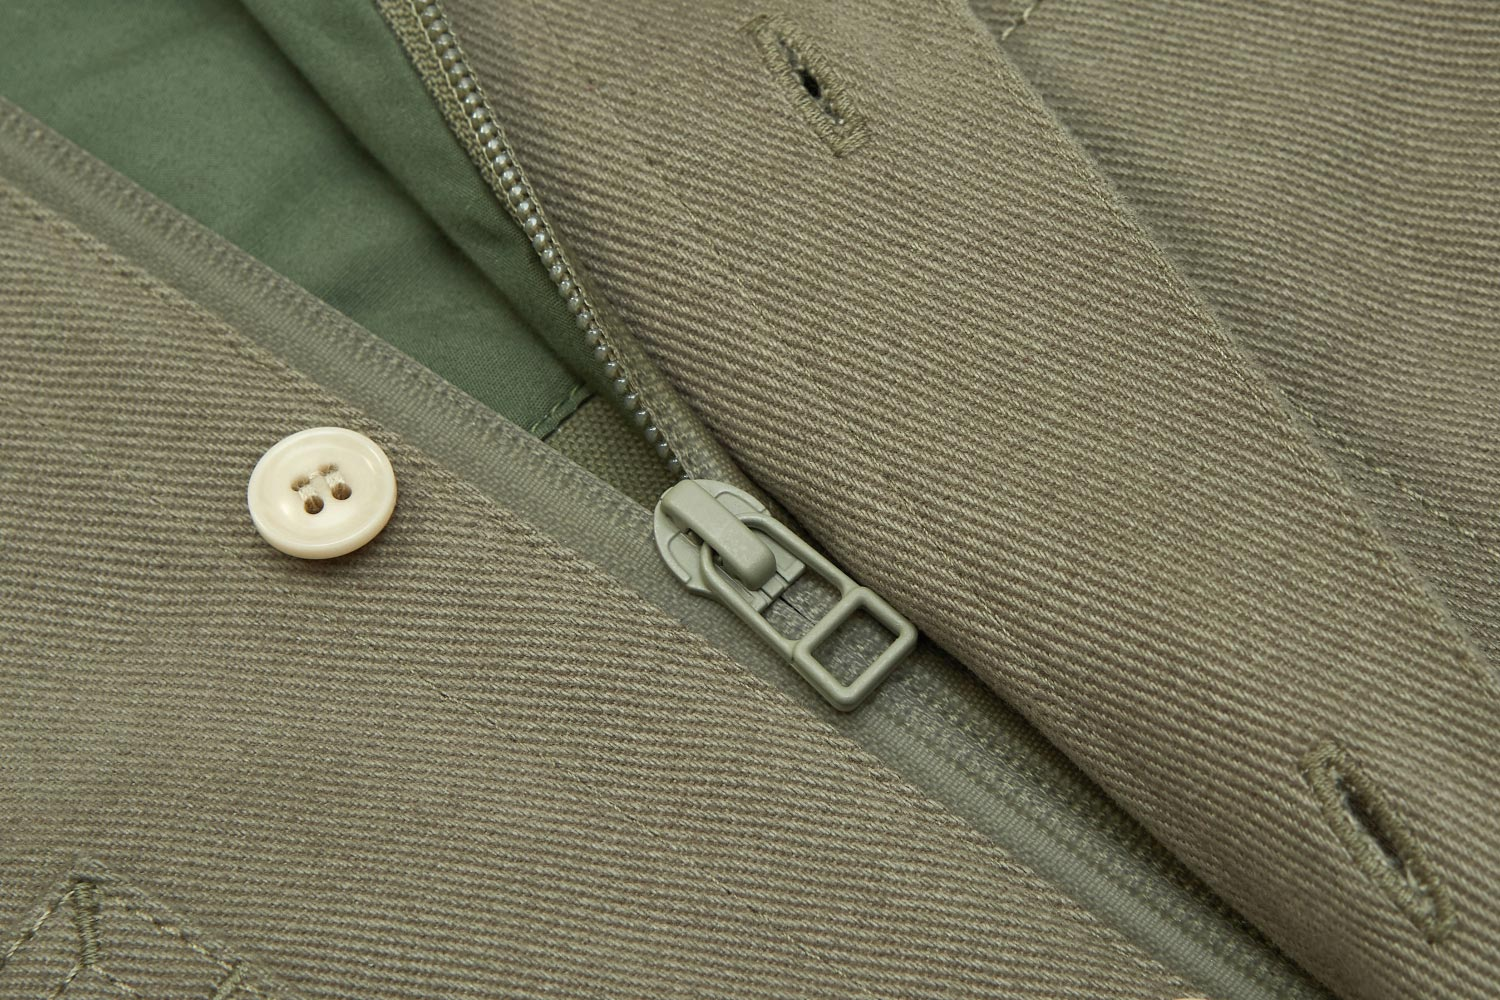 Heavyweight cotton shell sealed with Aquagard zip. Stops wind entering at the front.